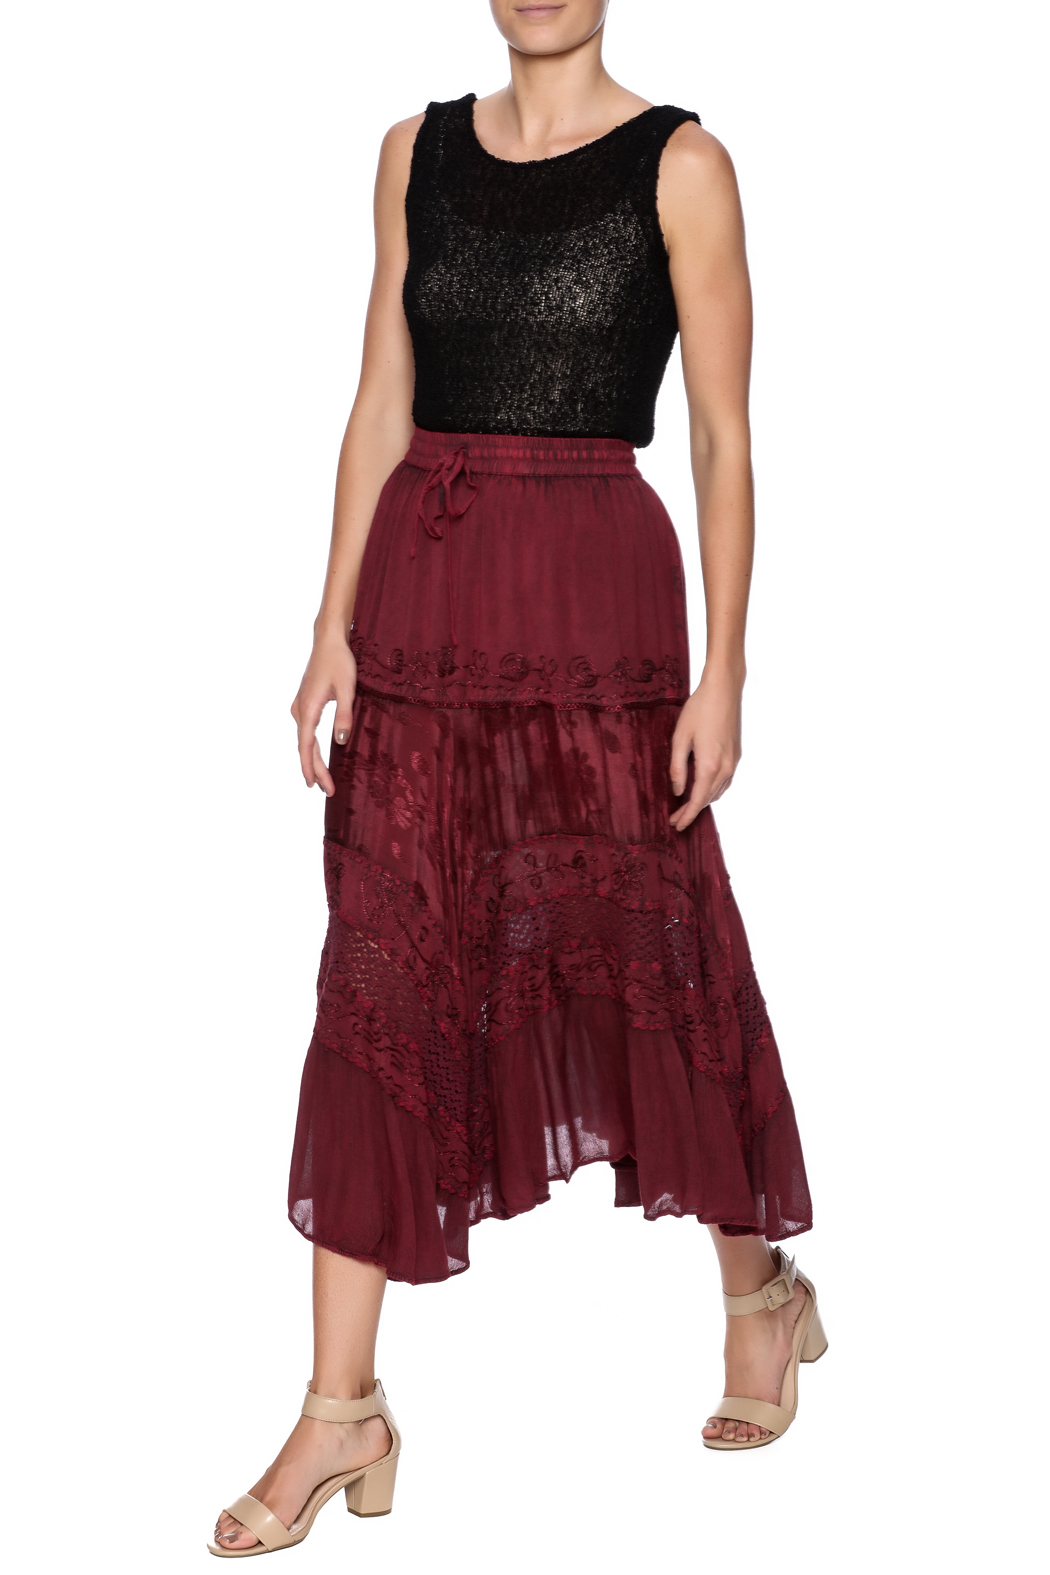 Magic Scarf Chic Linen and Lace Skirt - Front Full Image